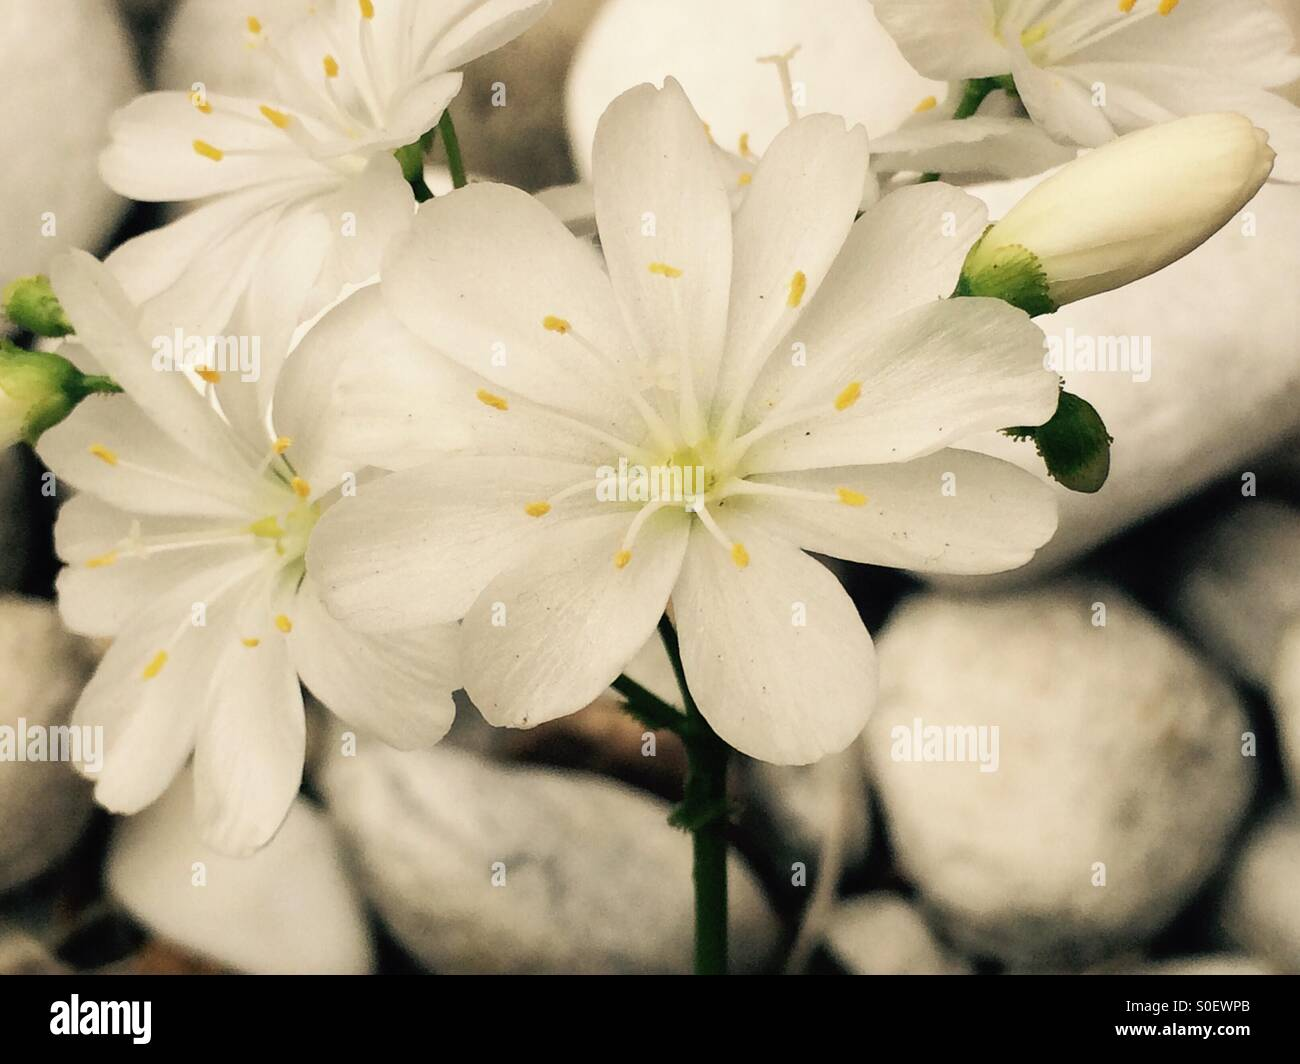 White Flowers With White Pebbles Background Stock Photo 310114179